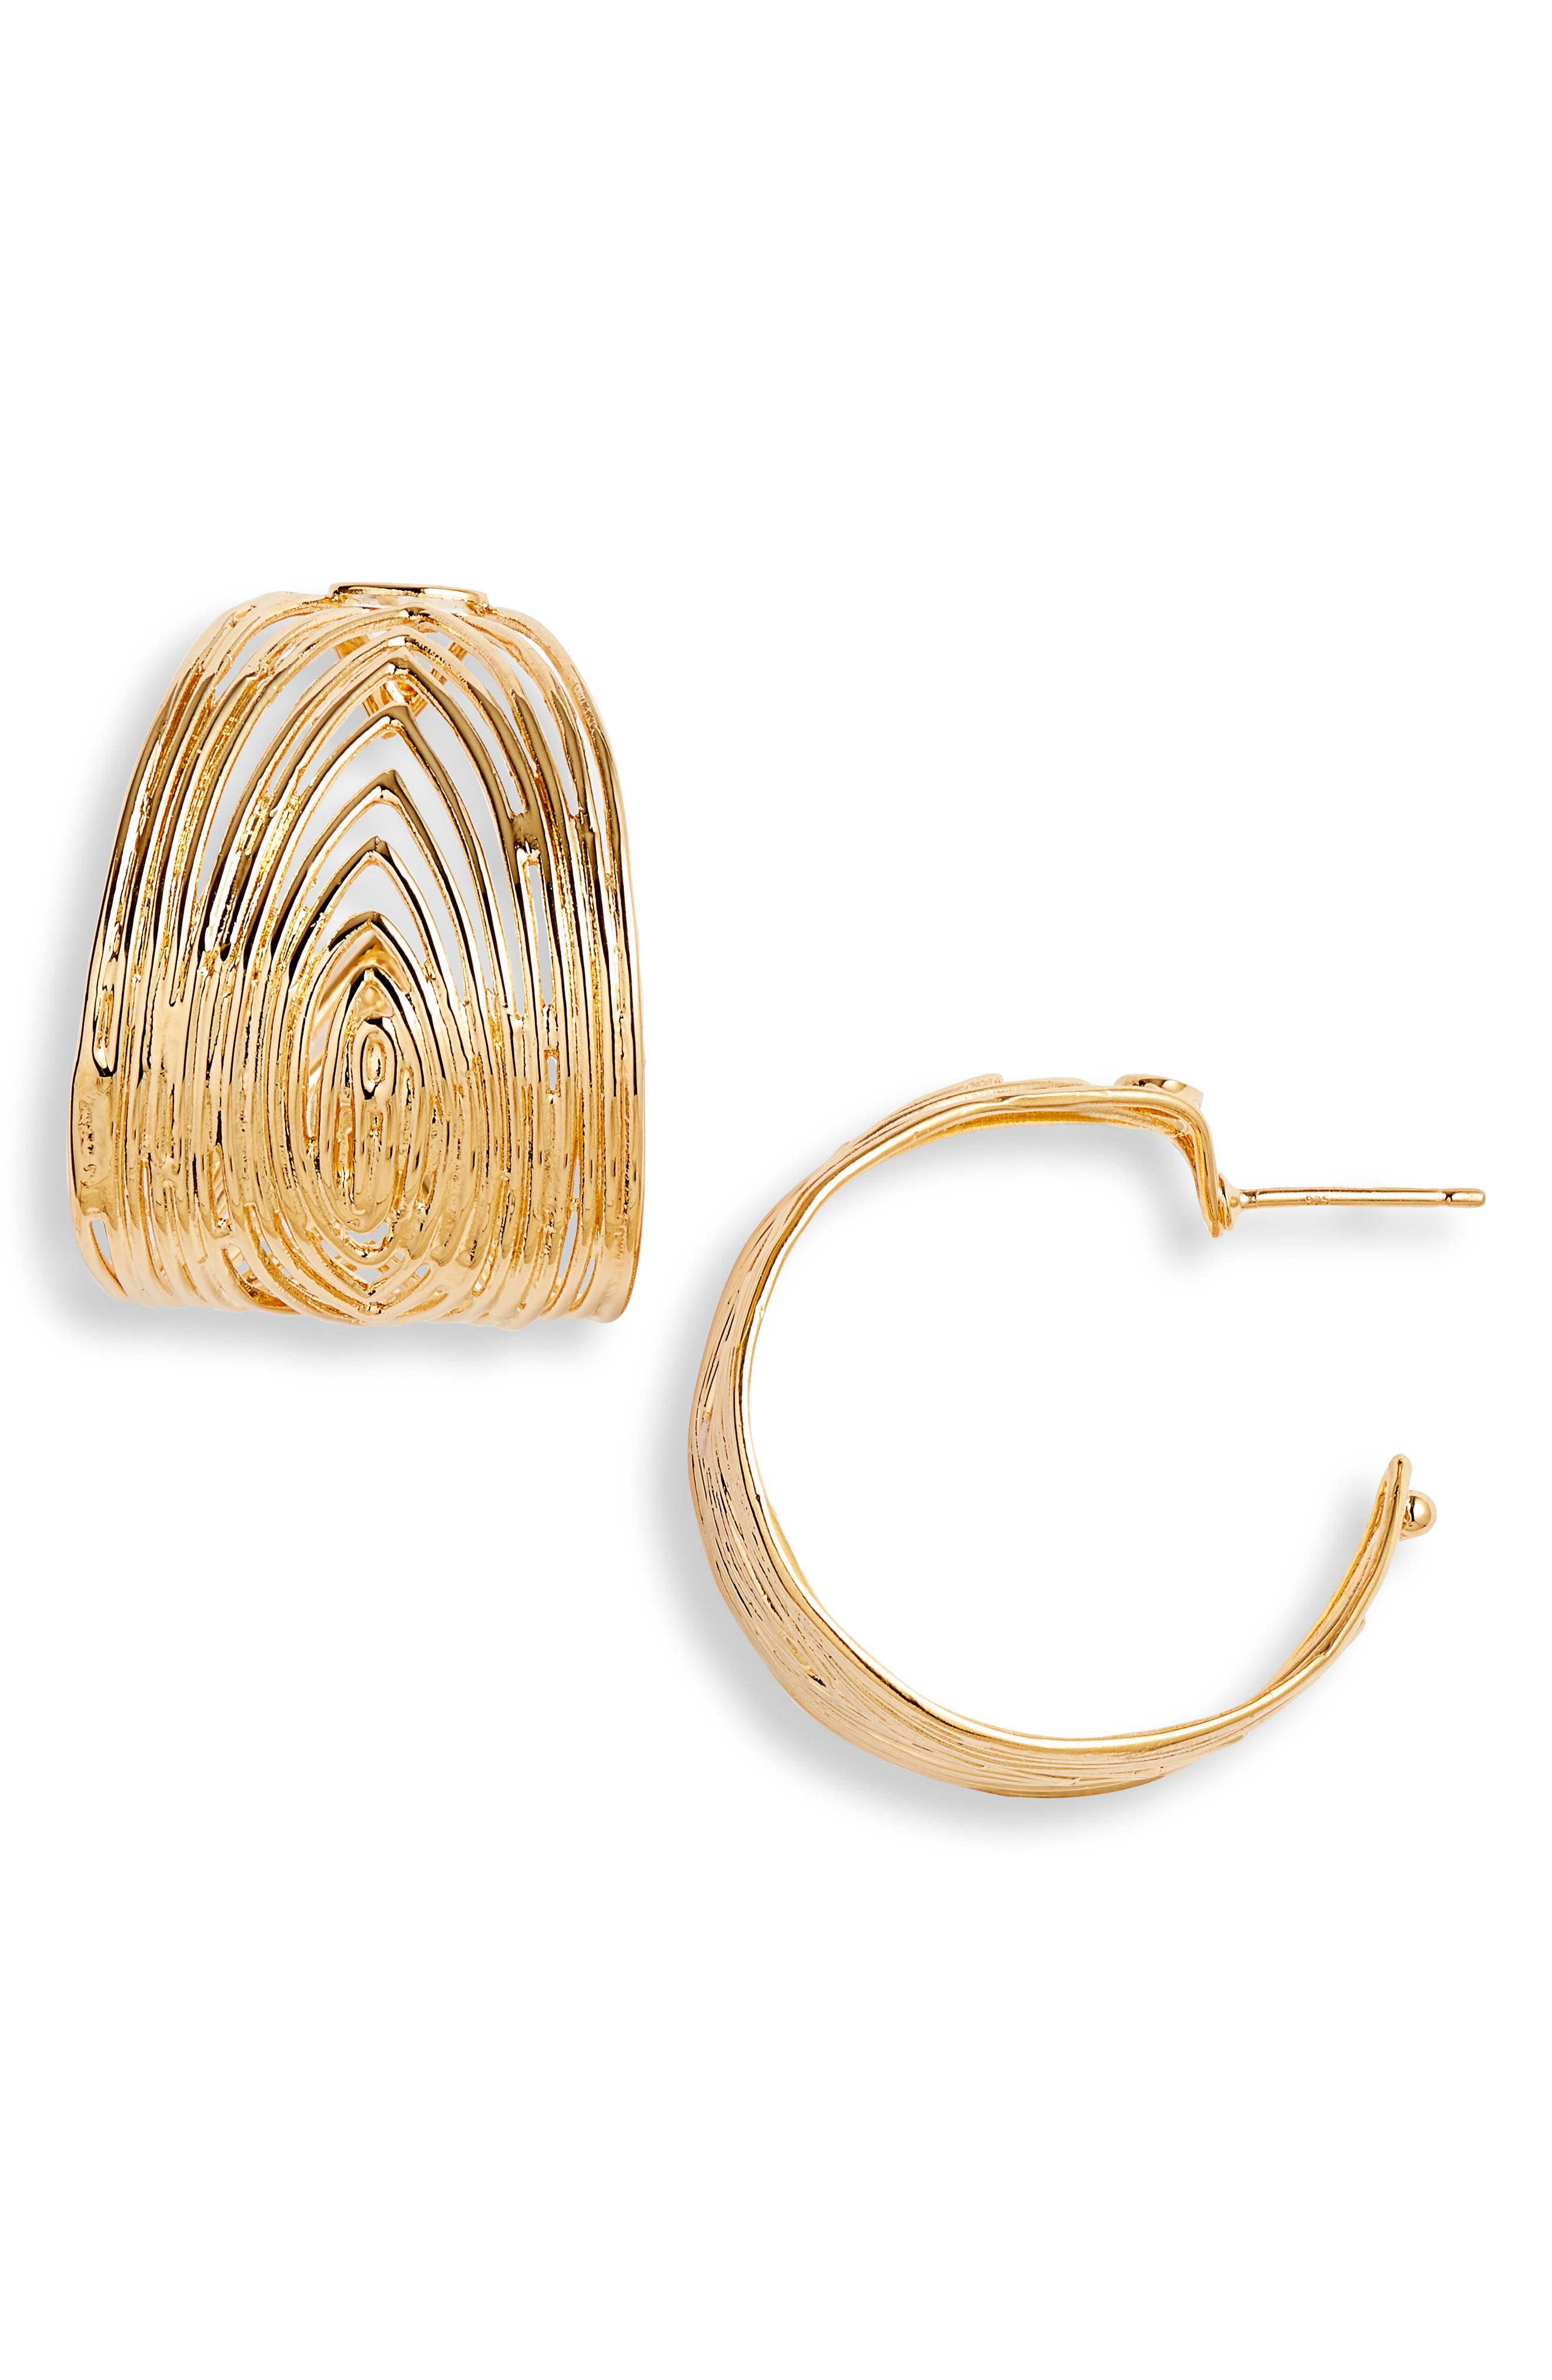 Wave Hoop Earrings,                         Main,                         color, YELLOW GOLD